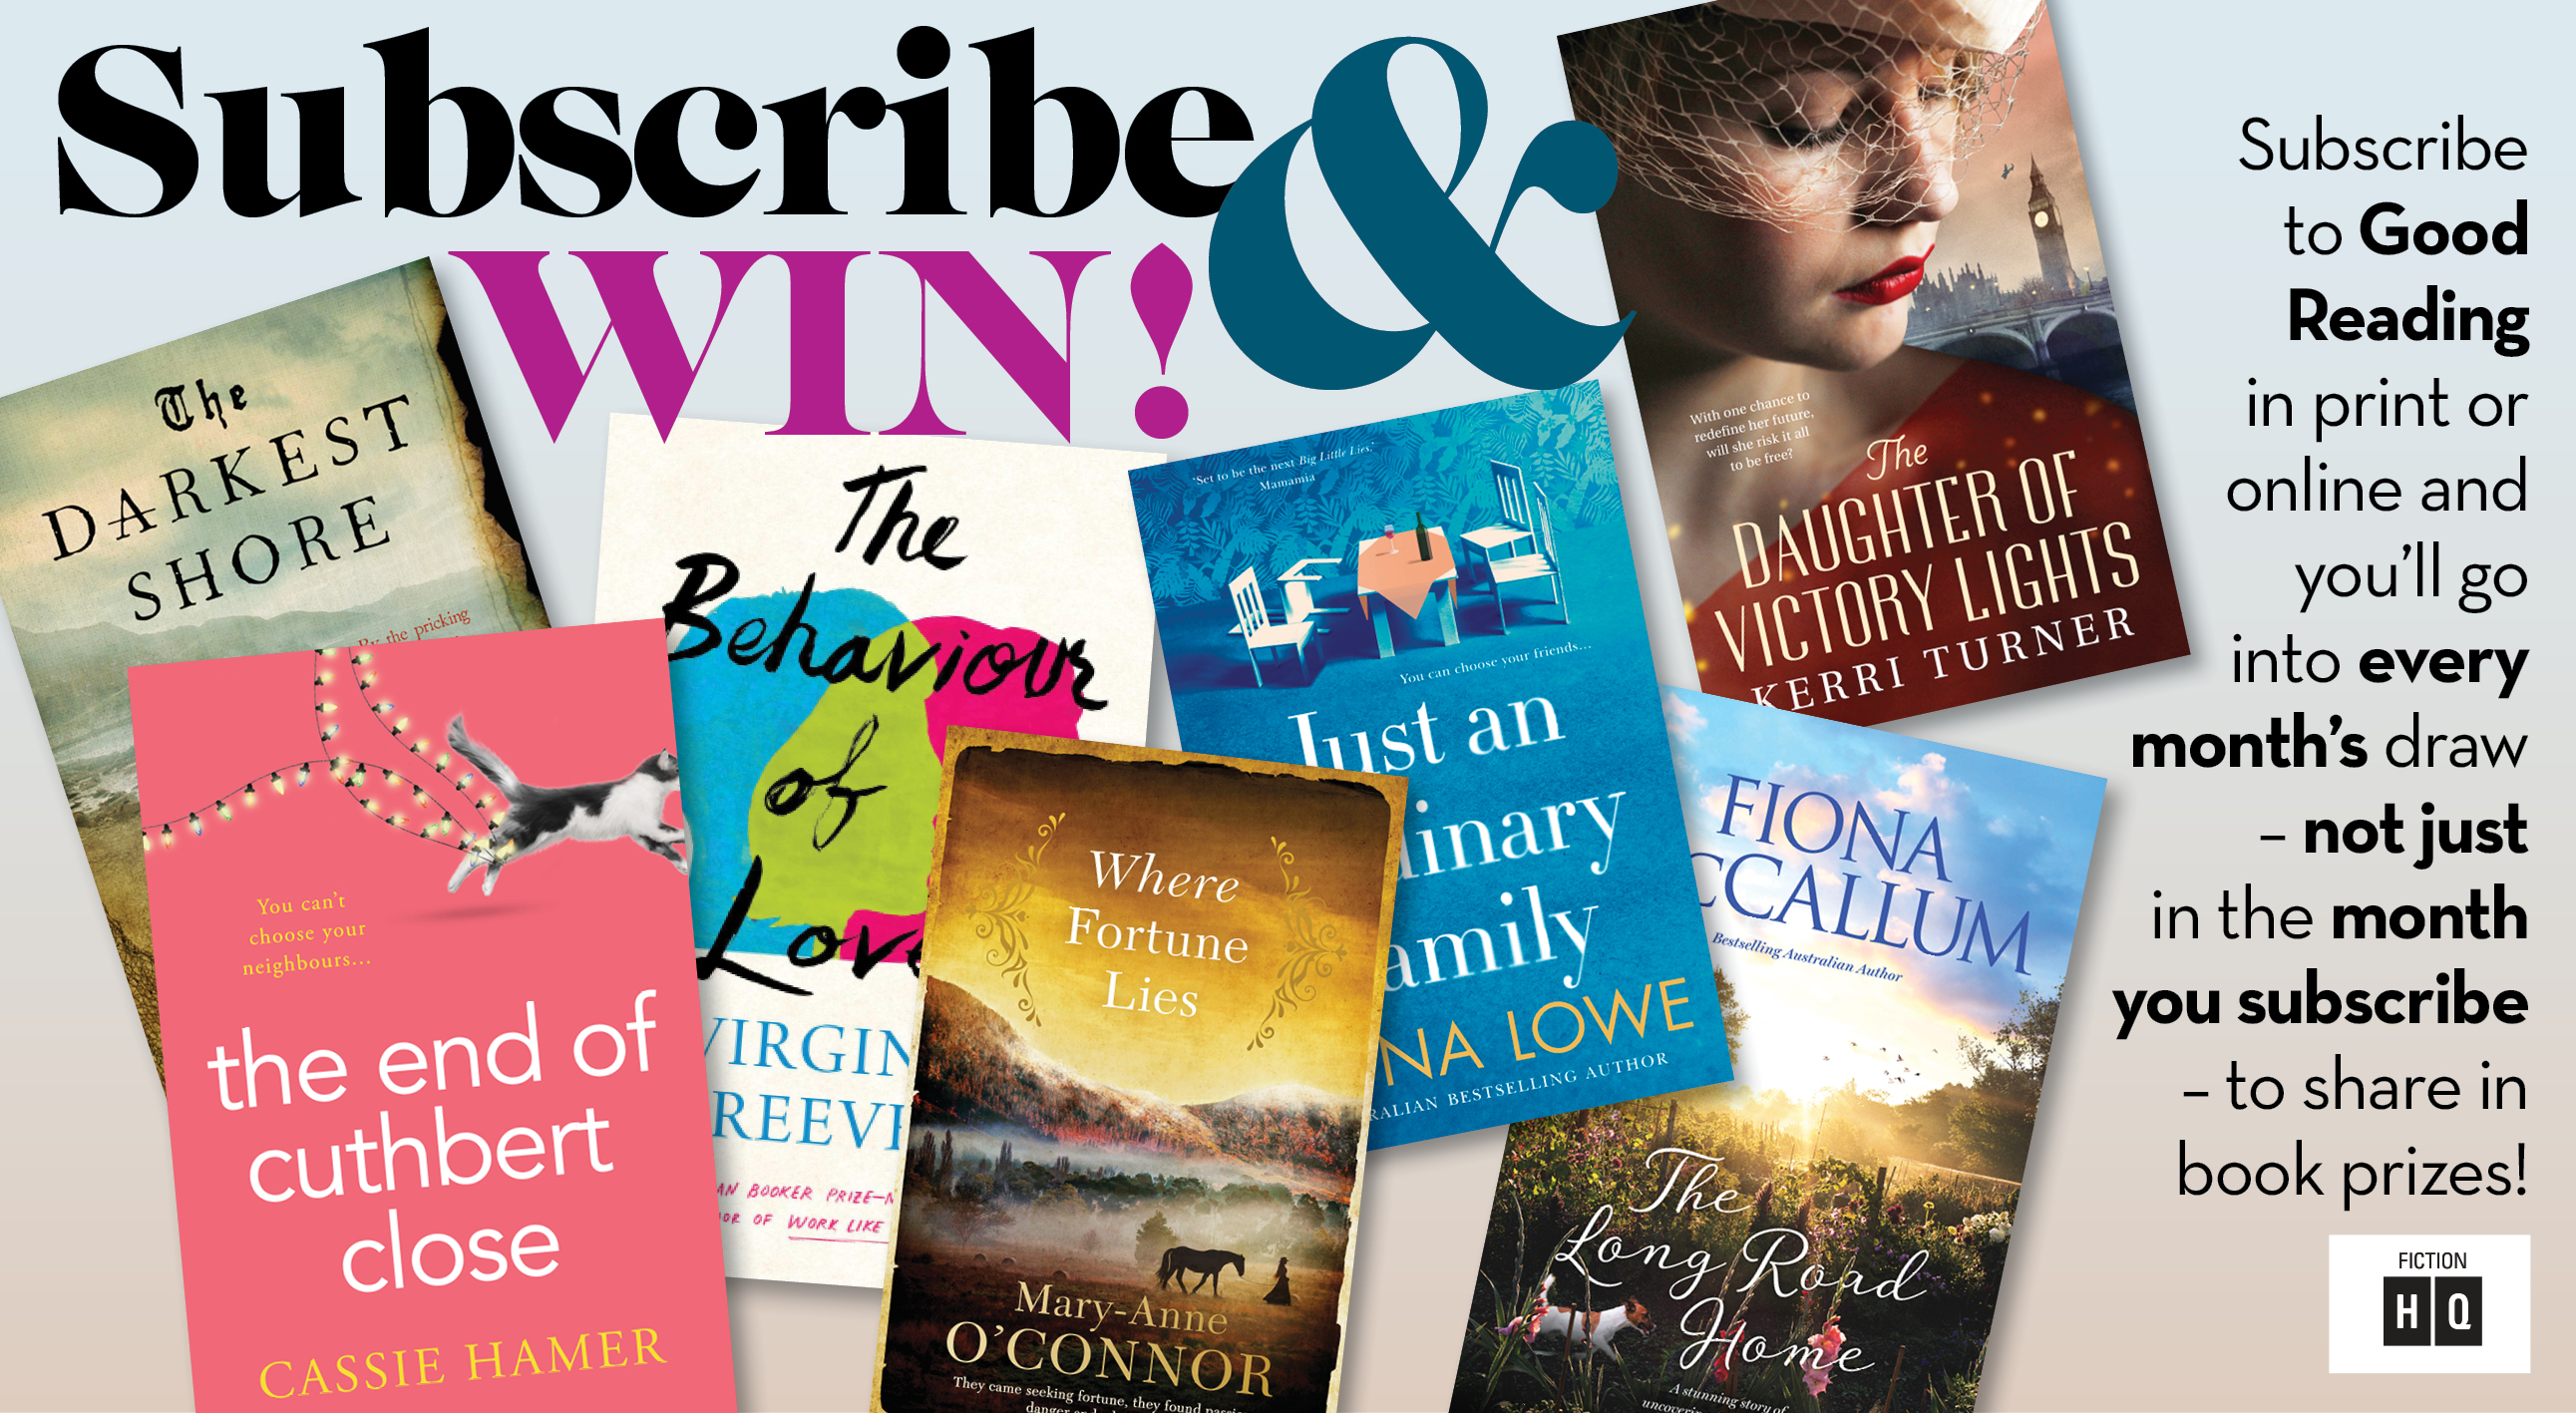 Subscribe & Win April